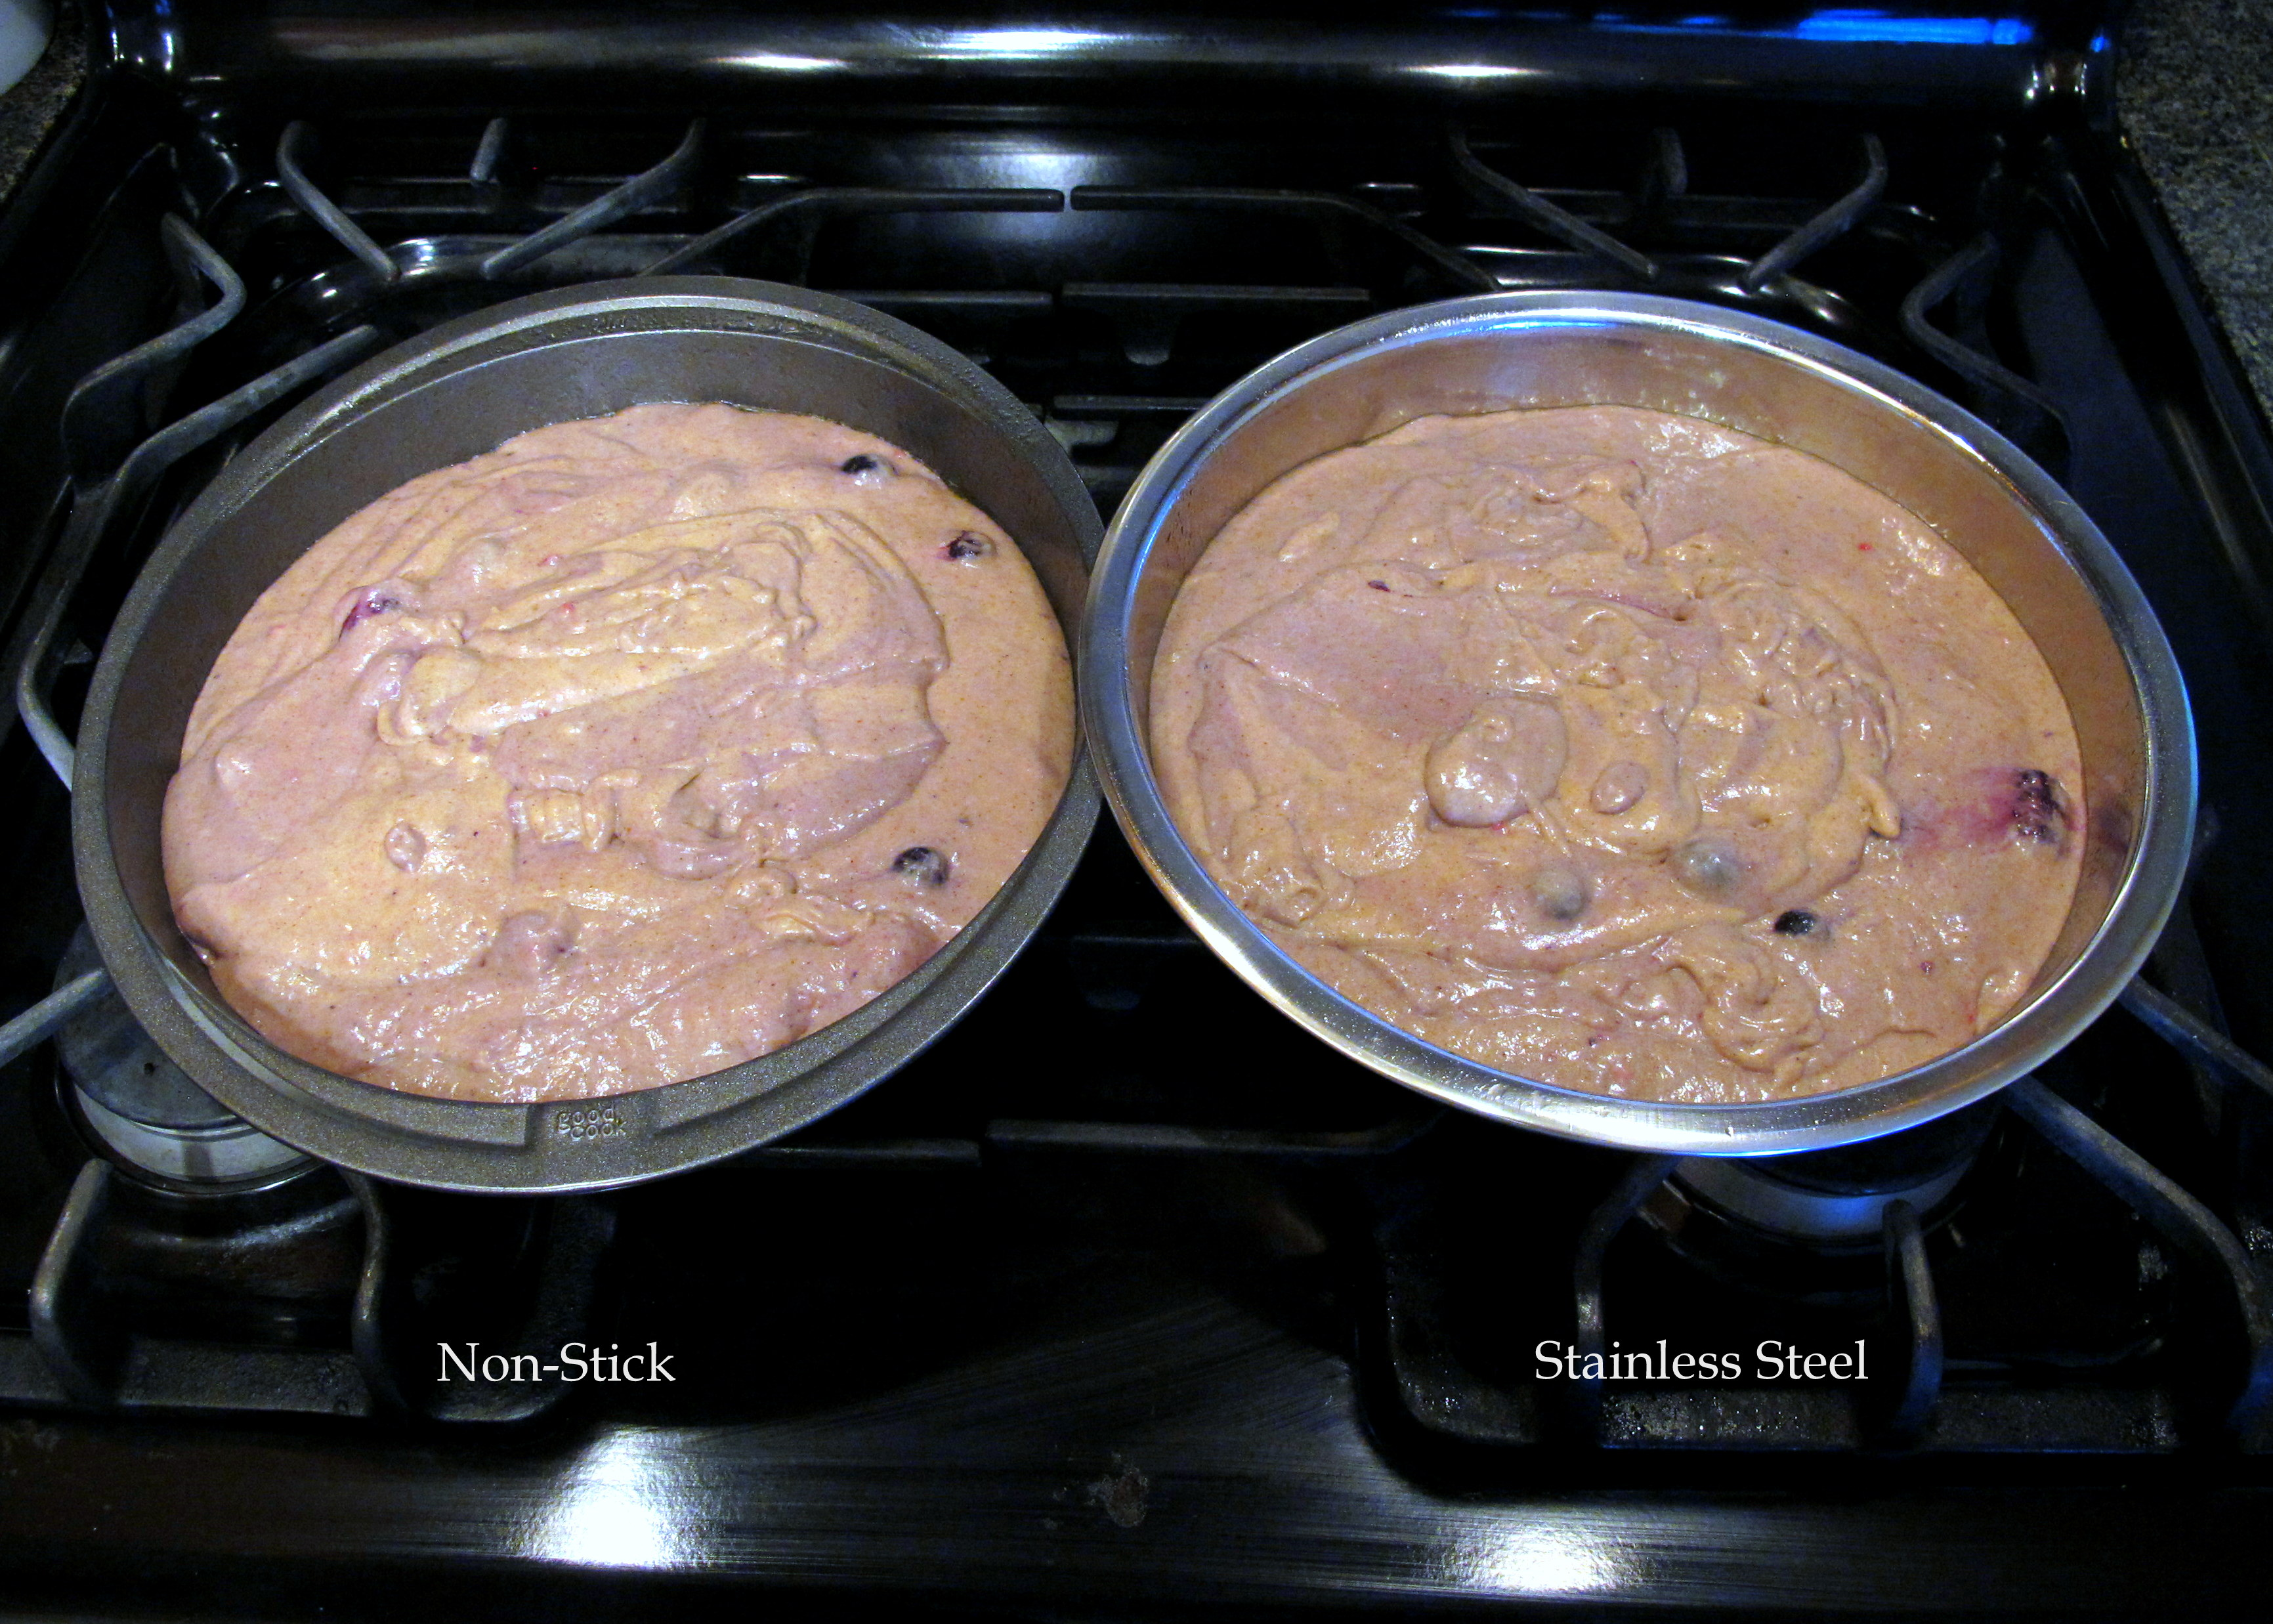 The Great Cake Tin Bake Off Stainless Steel Vs Non Stick Not